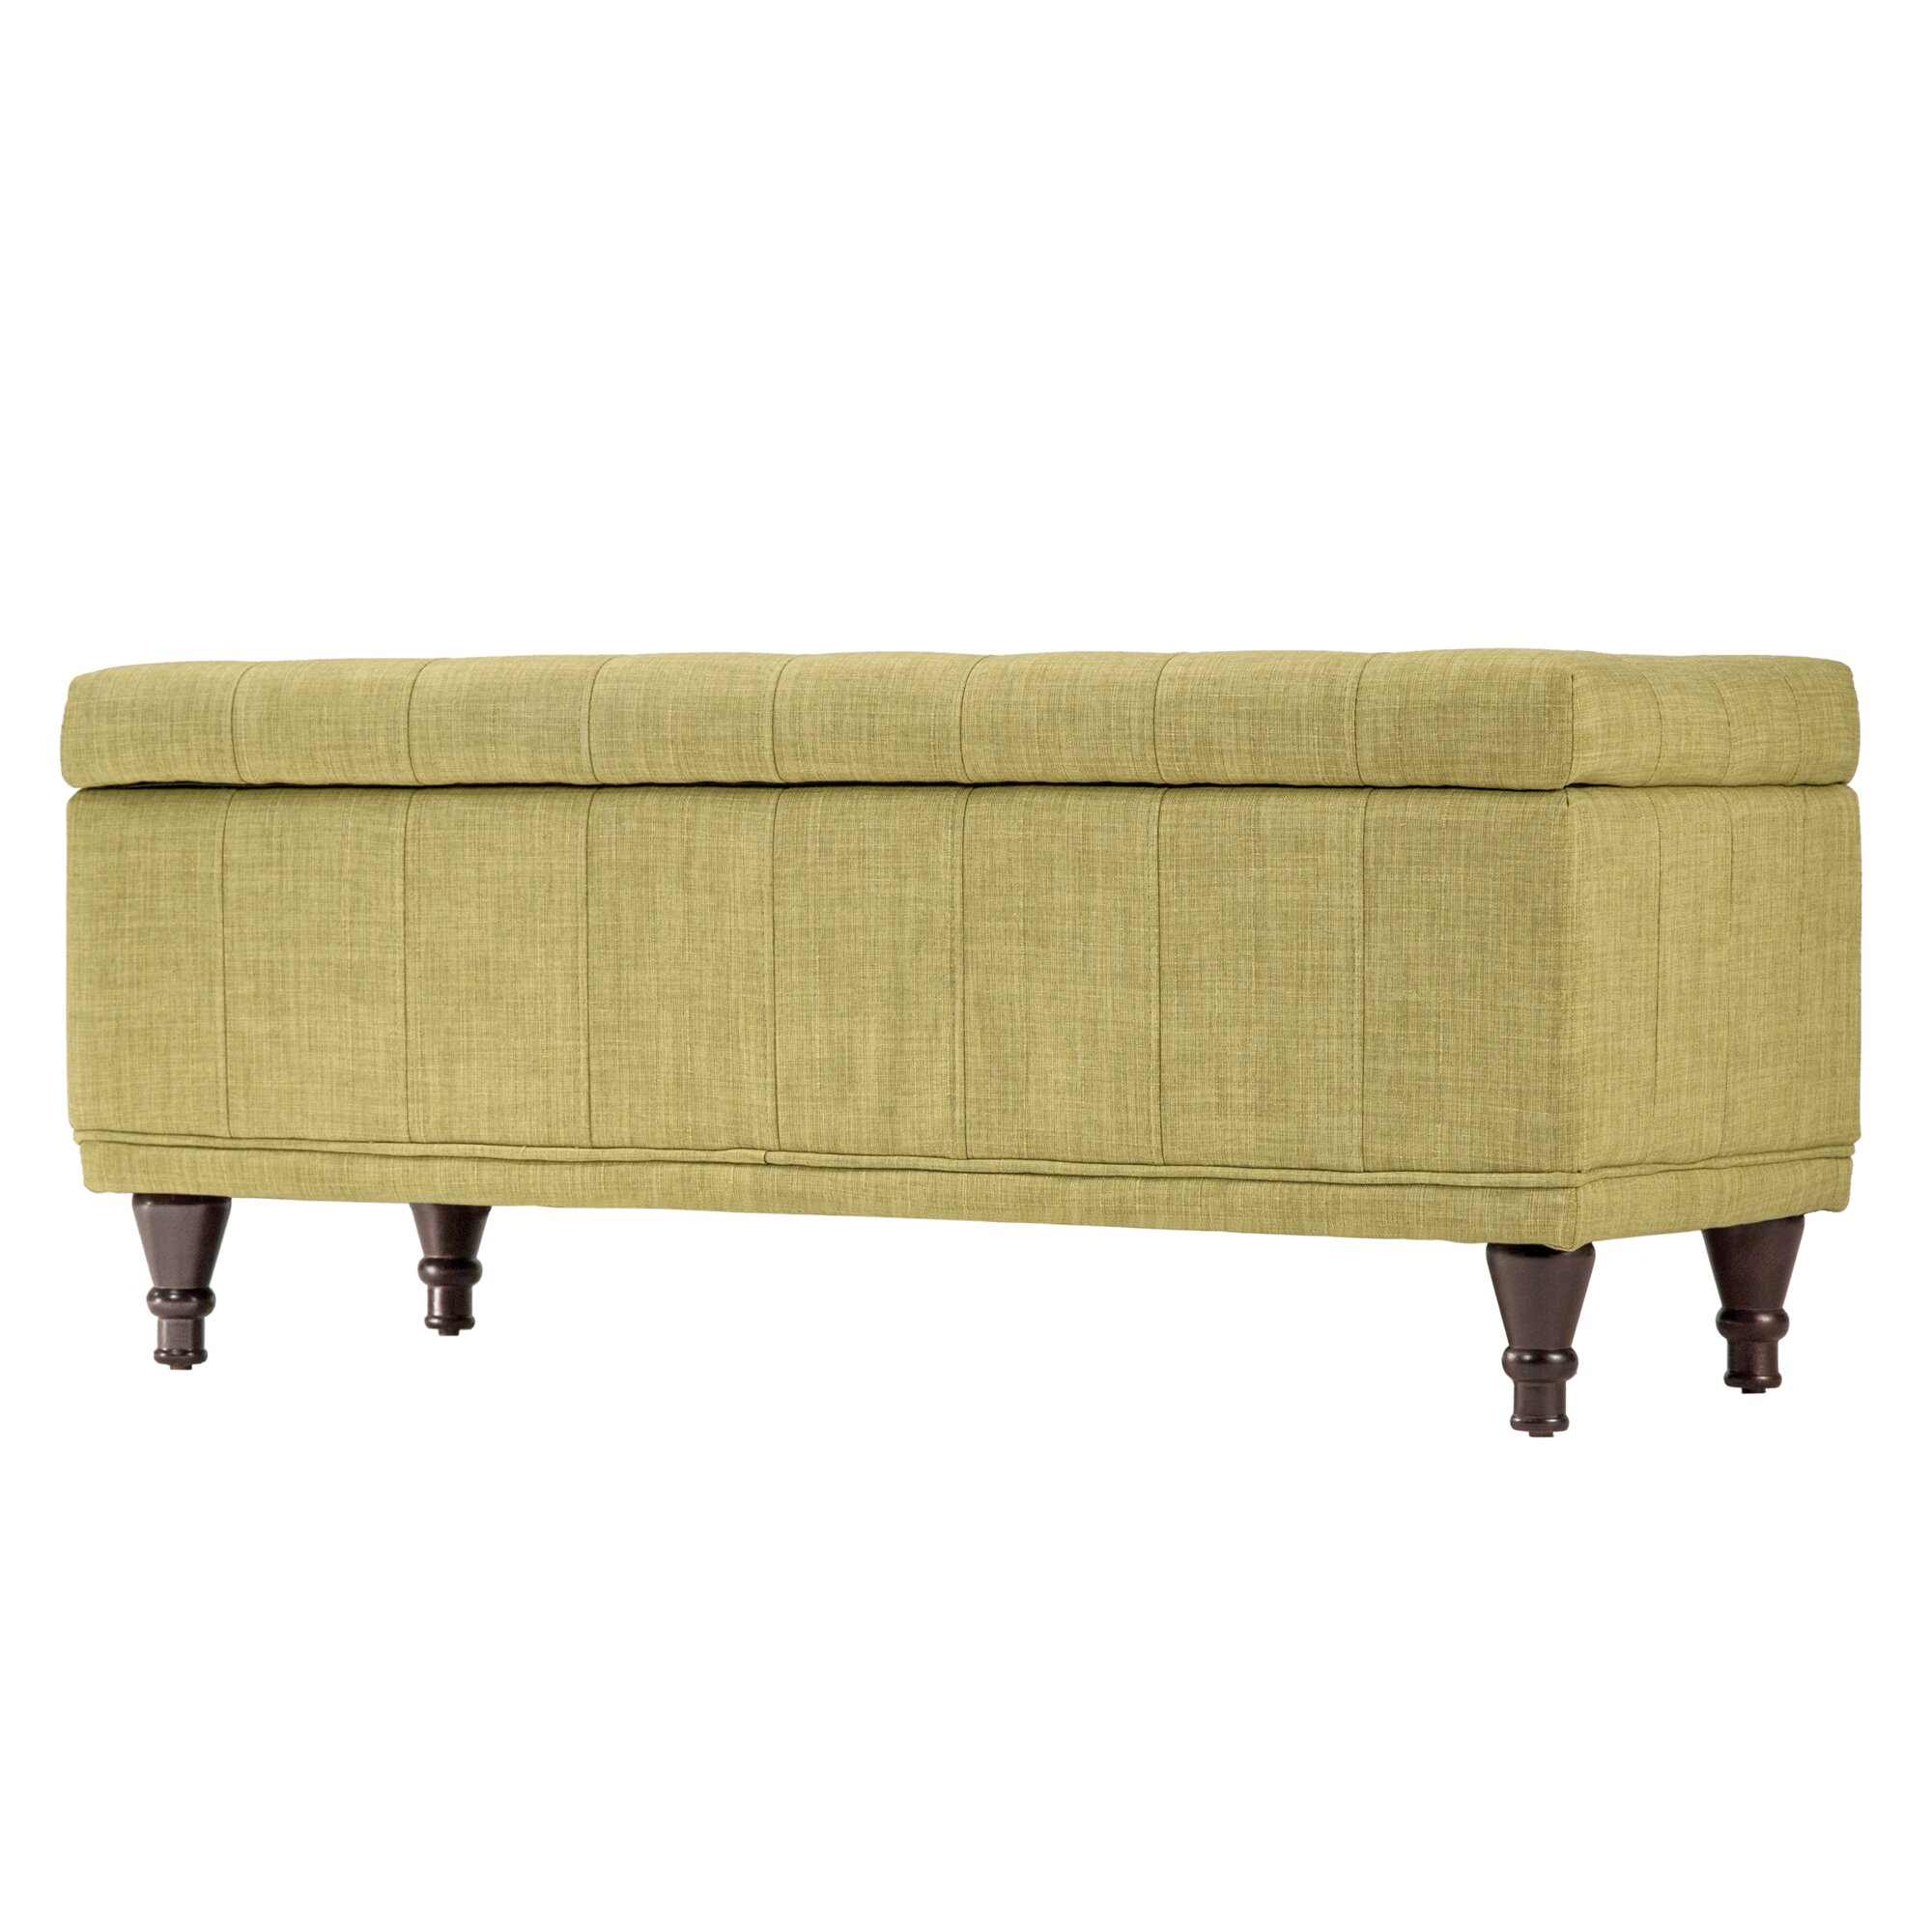 Three Posts Southampton Upholstered Storage Bedroom Bench